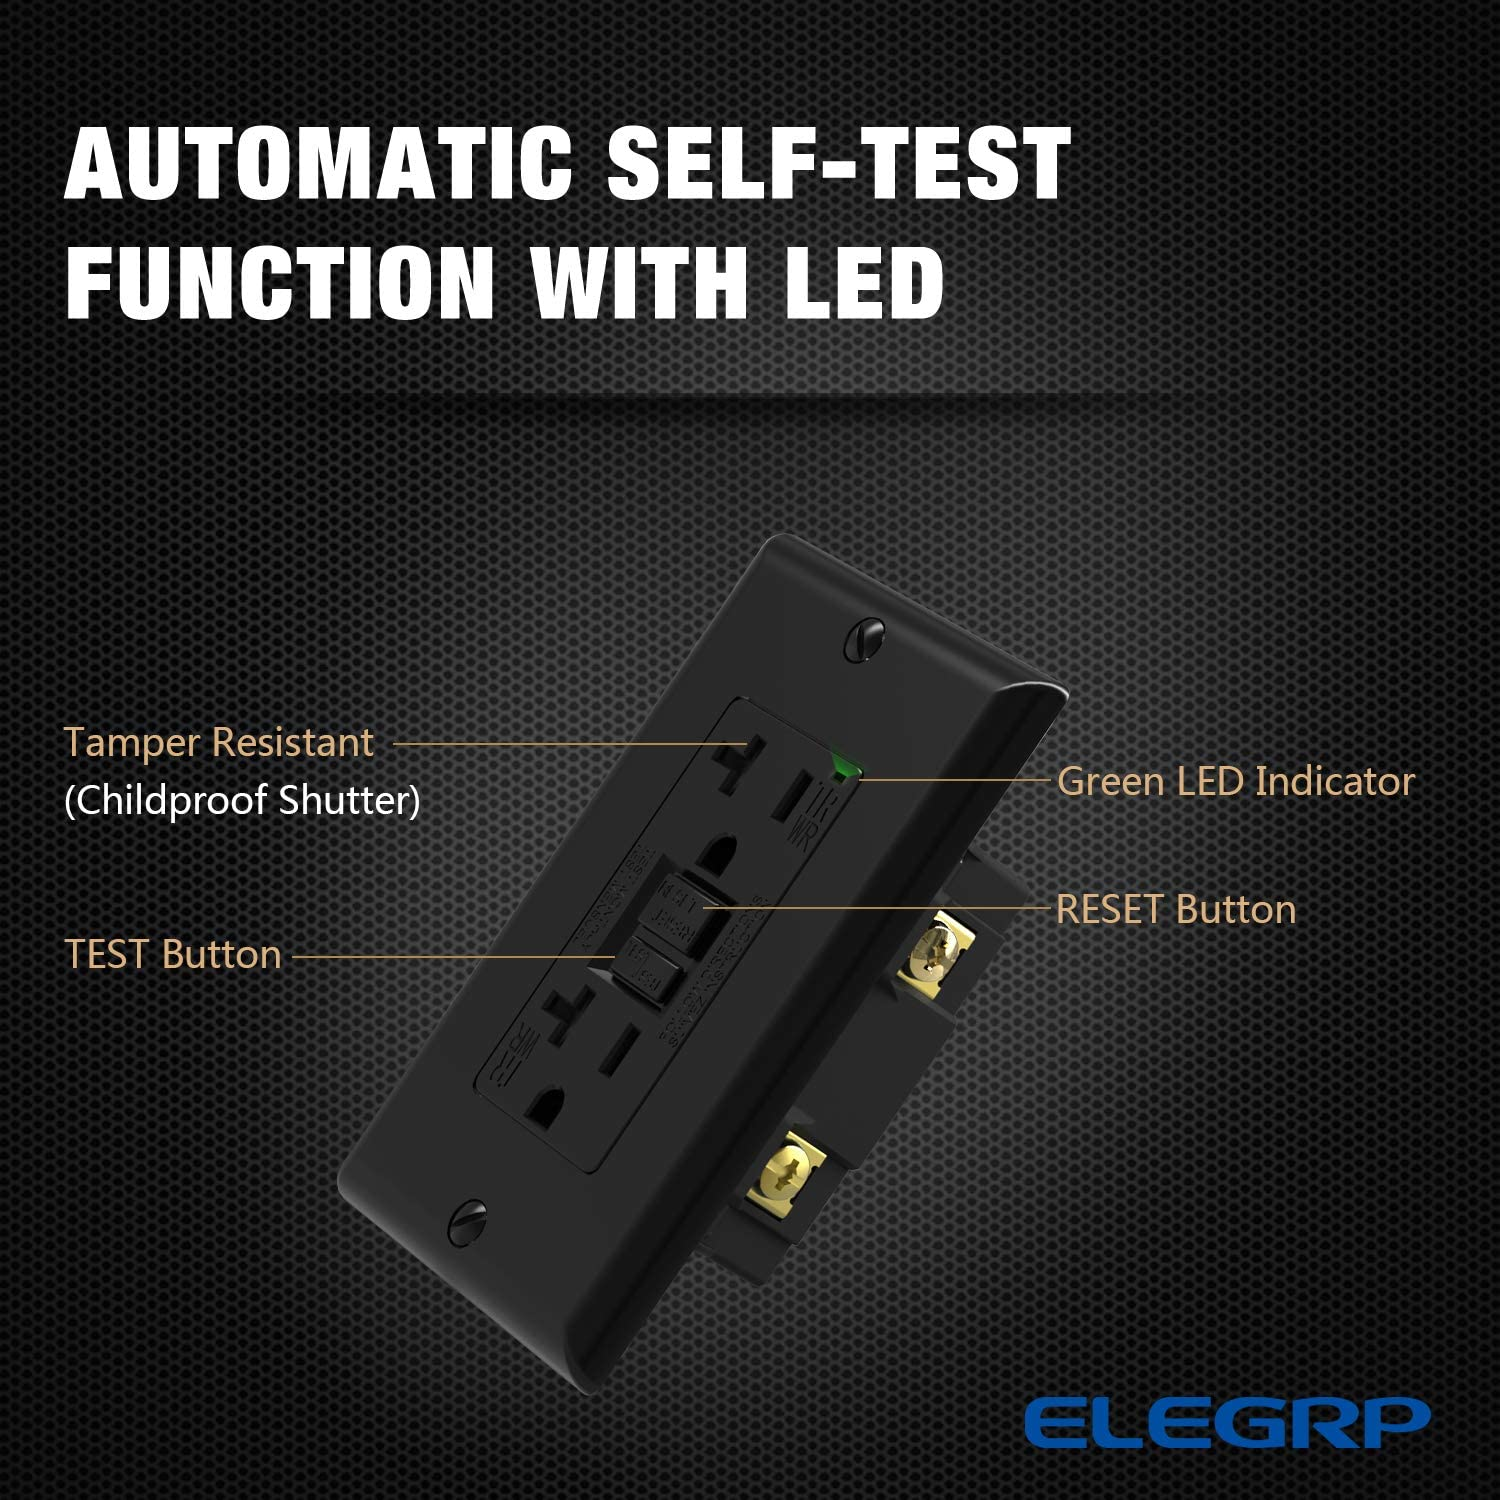 5-20R GFI Dual Receptacle UL Listed ELEGRP 20 Amp GFCI Outlet 1 pack,Black TR Tamper Resistant and WR Weather Wall Plate Included Self-Test Ground Fault Circuit Interrupters